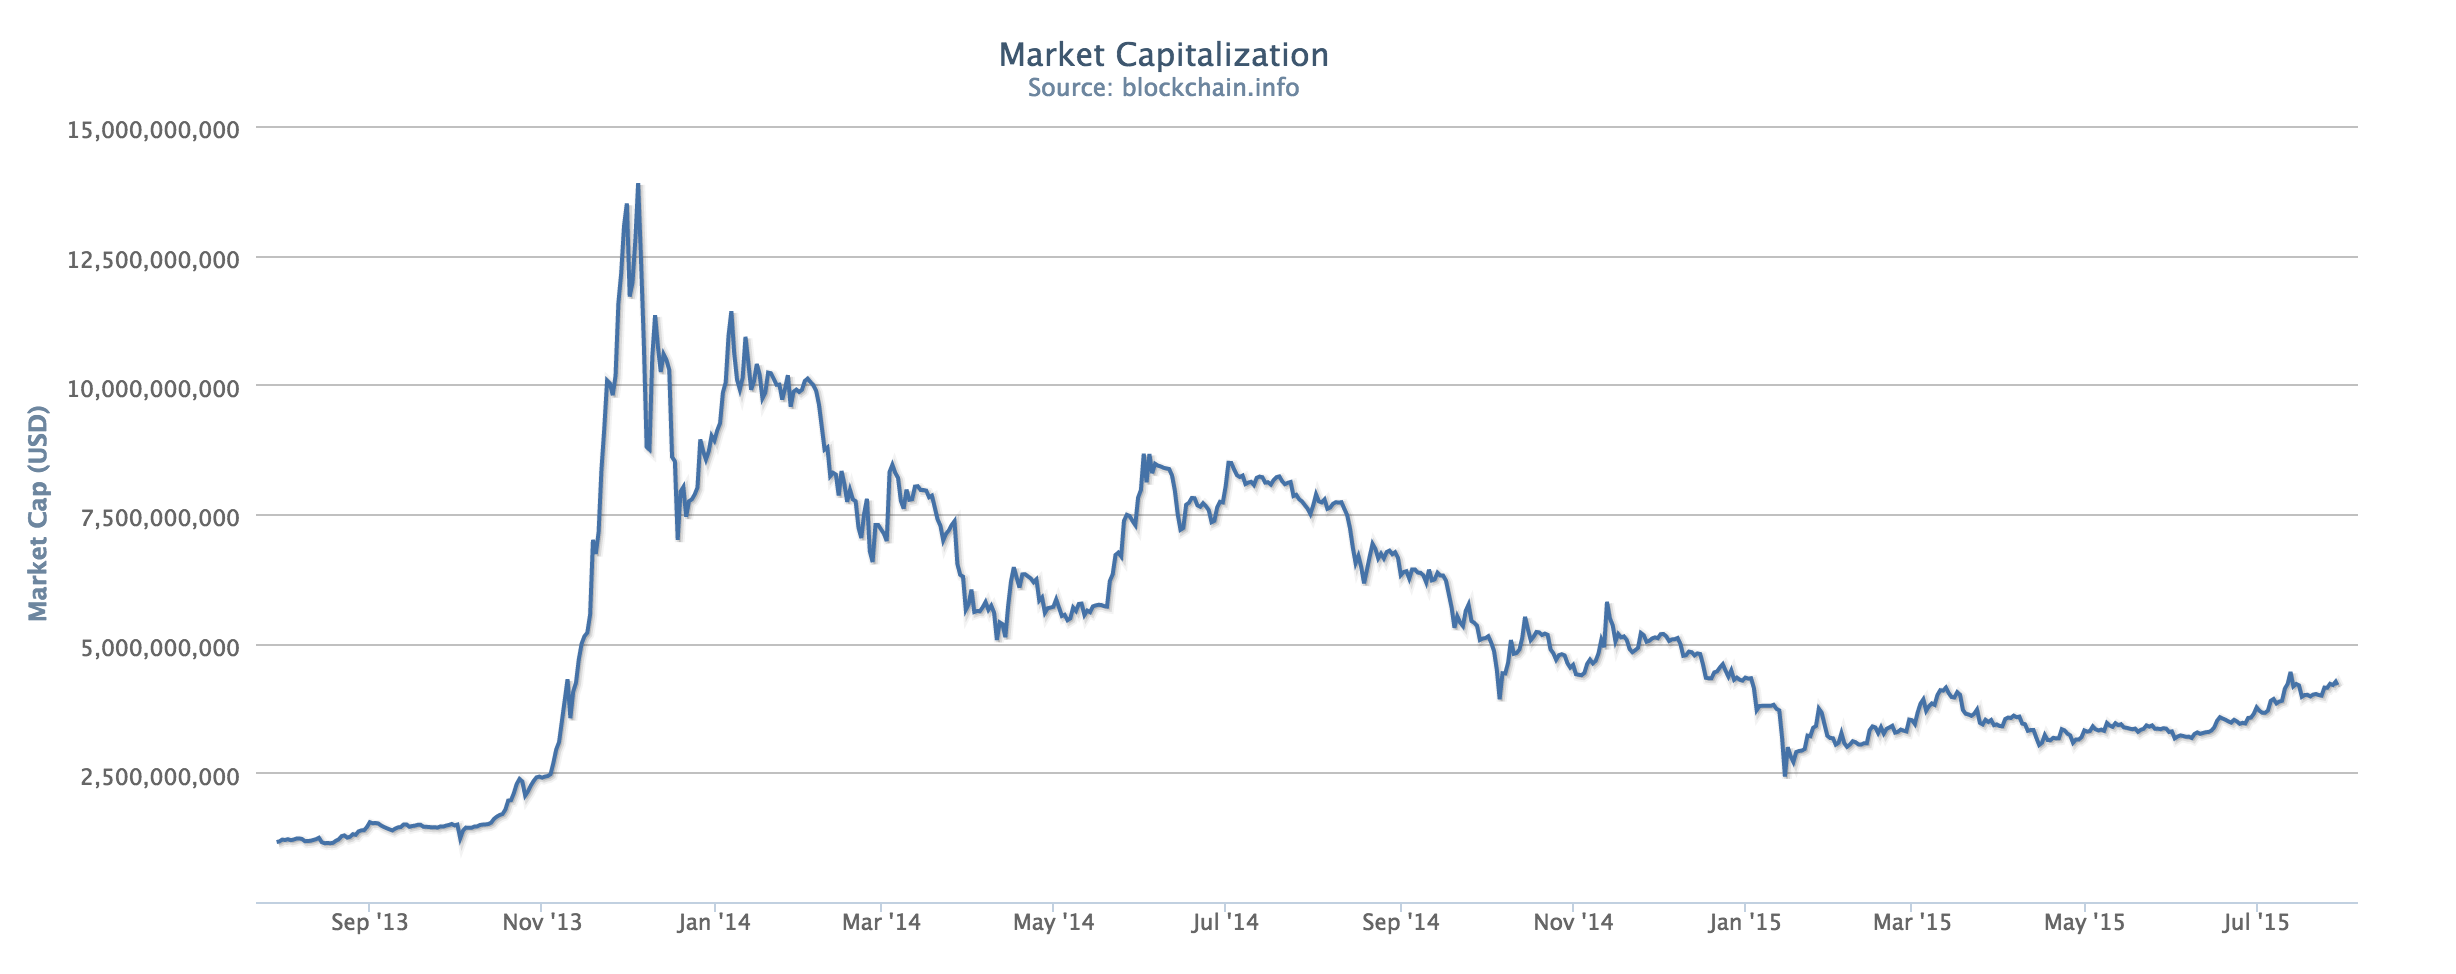 Bitcoin Market Cap >> Current Market Capitalization Of Bitcoin Historical Bitcoin Prices